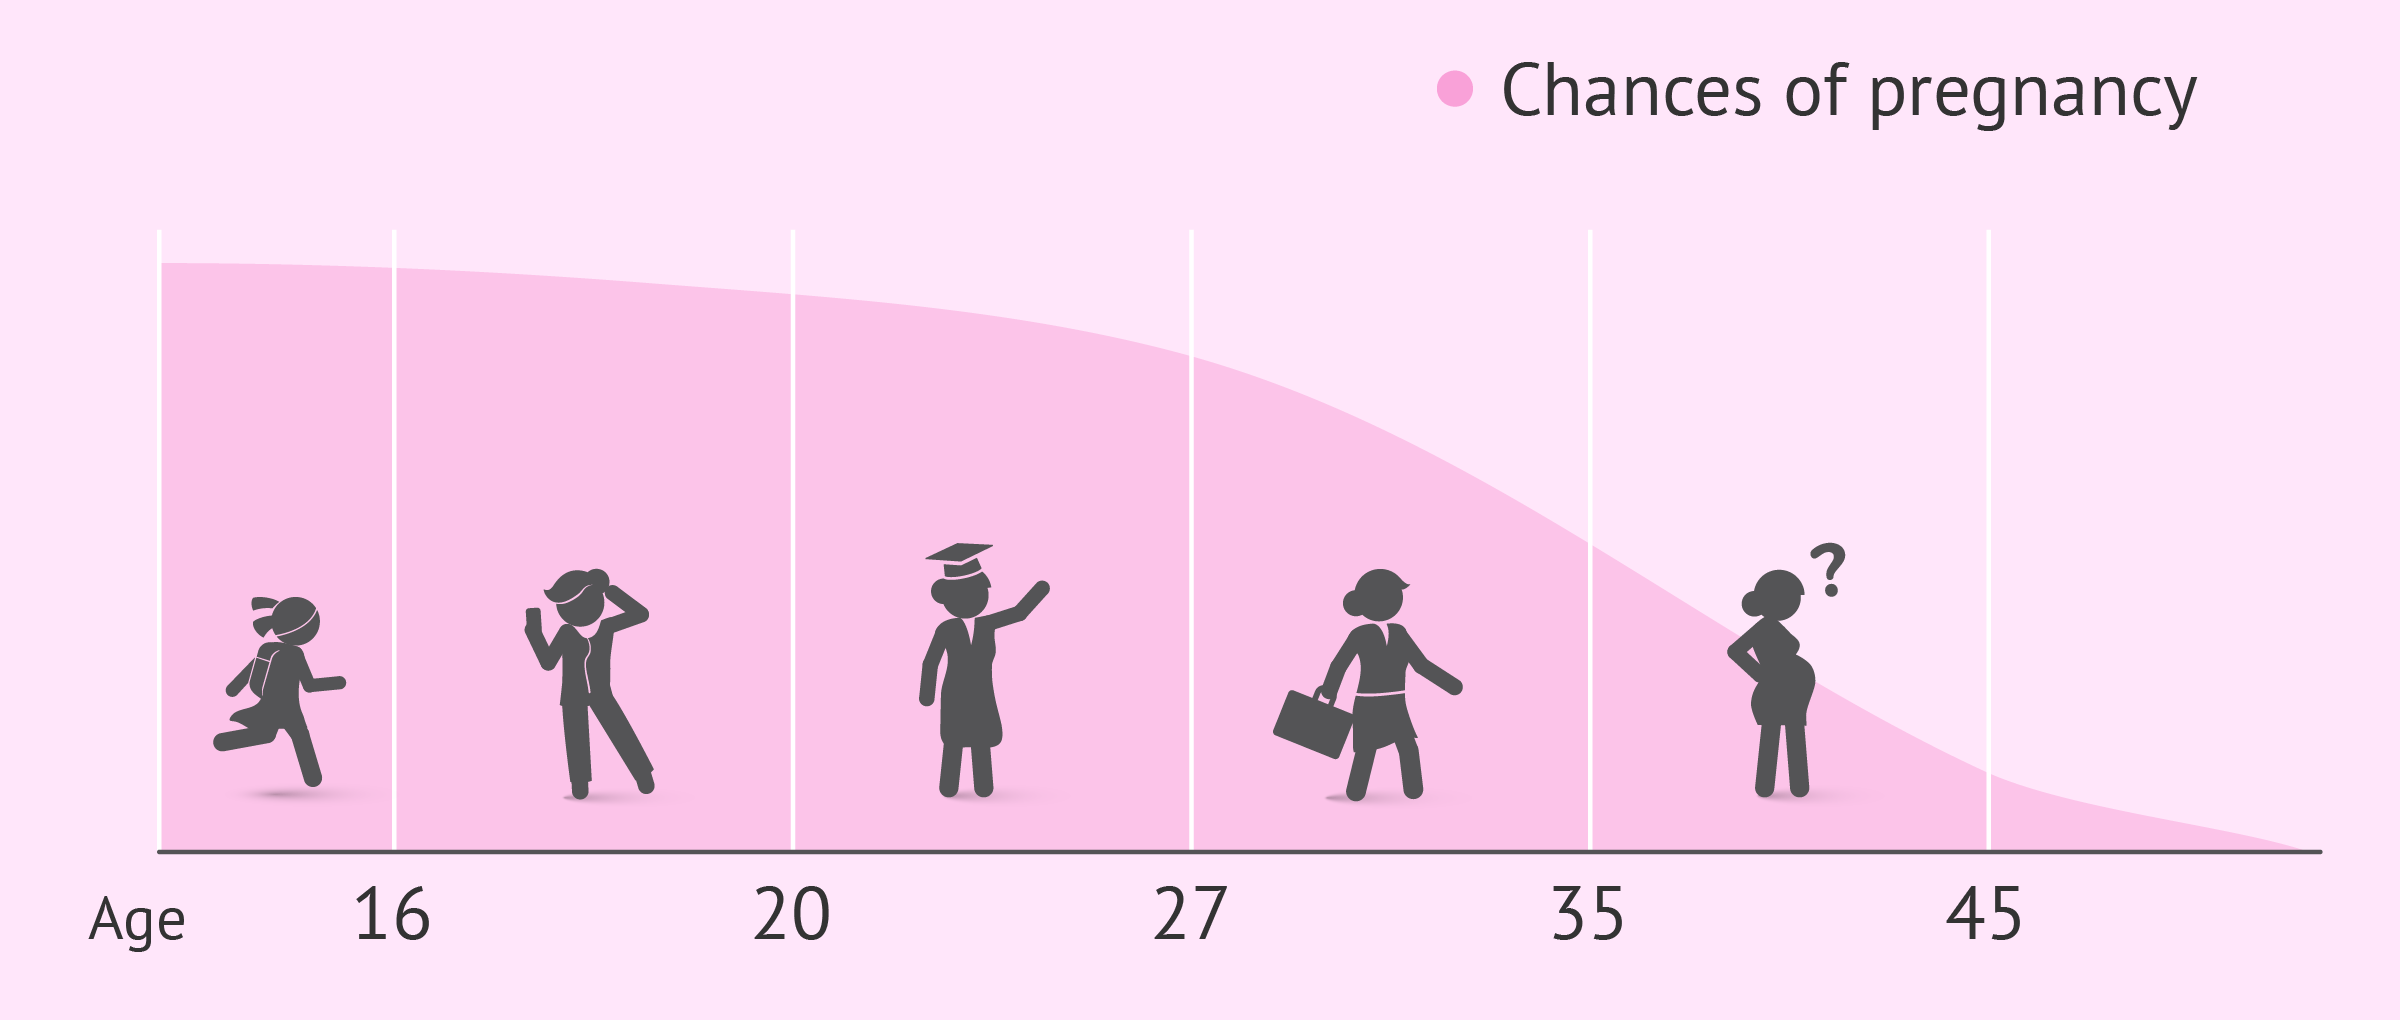 Chances of pregnancy by age chart